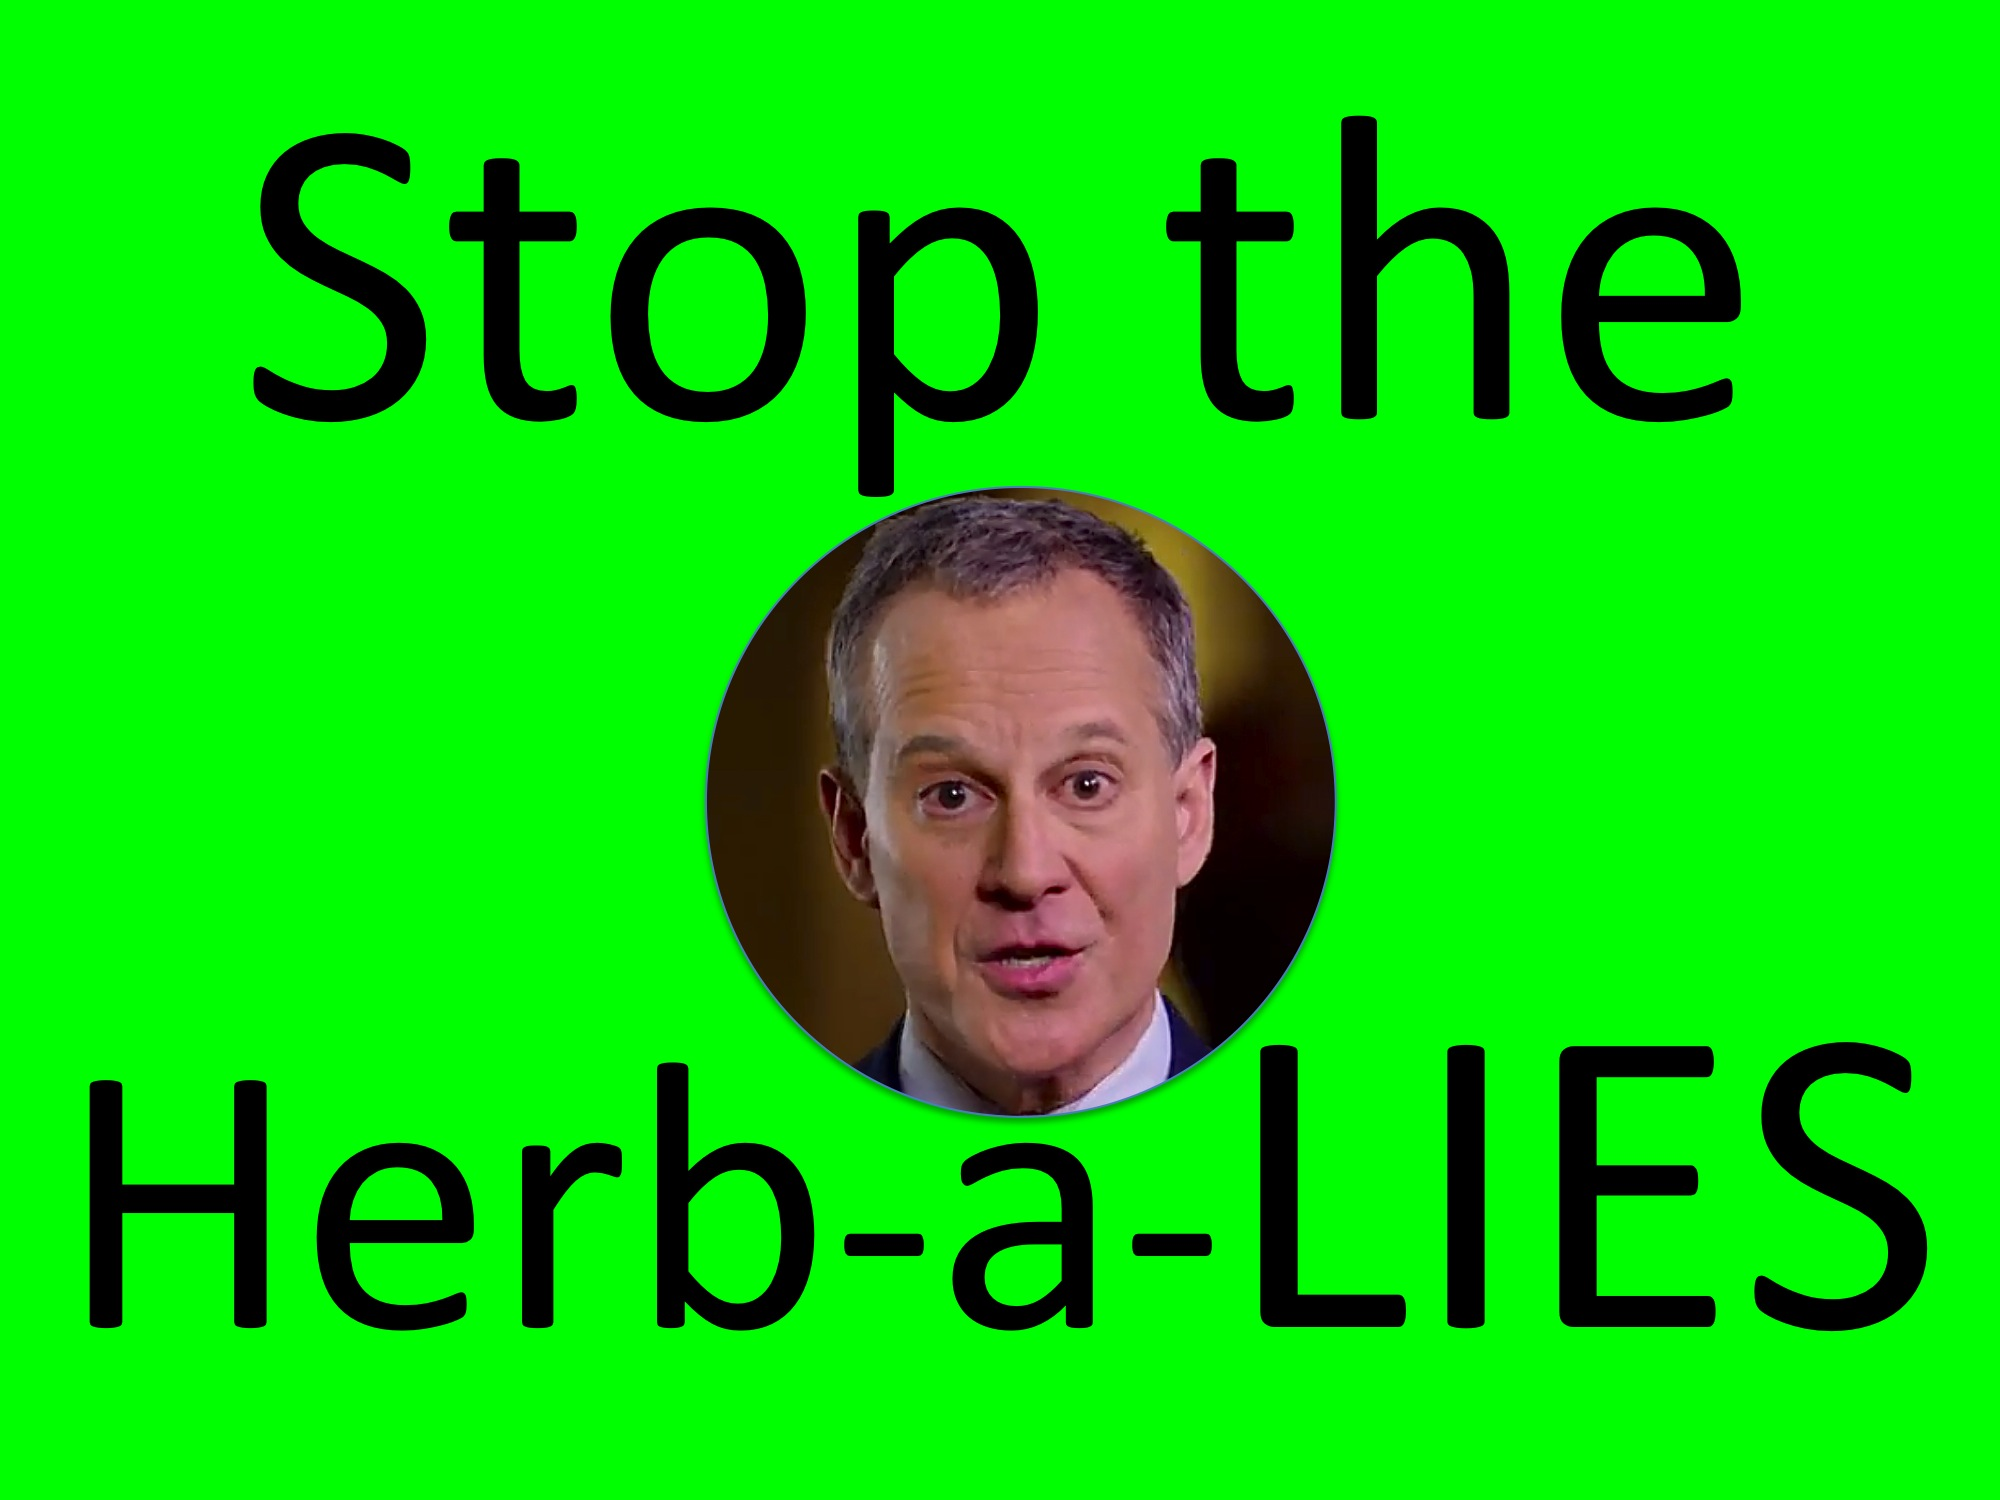 New York State Attorney General  Eric Schneiderman  is reportedly investigating  Herbalife Ltd. , a Cayman Islands corporation headquartered in Los Angeles, over allegations of fraud and for being a  pyramid scheme . To defend itself, Herbalife has employed teams of lobbyists and public relations professionals, including the political consulting firm,  SKD Knickerbocker , that employs Attorney General Schneiderman's ex-wife,  Jennifer Cunningham . Source : Louis Flores/Photo Illustration